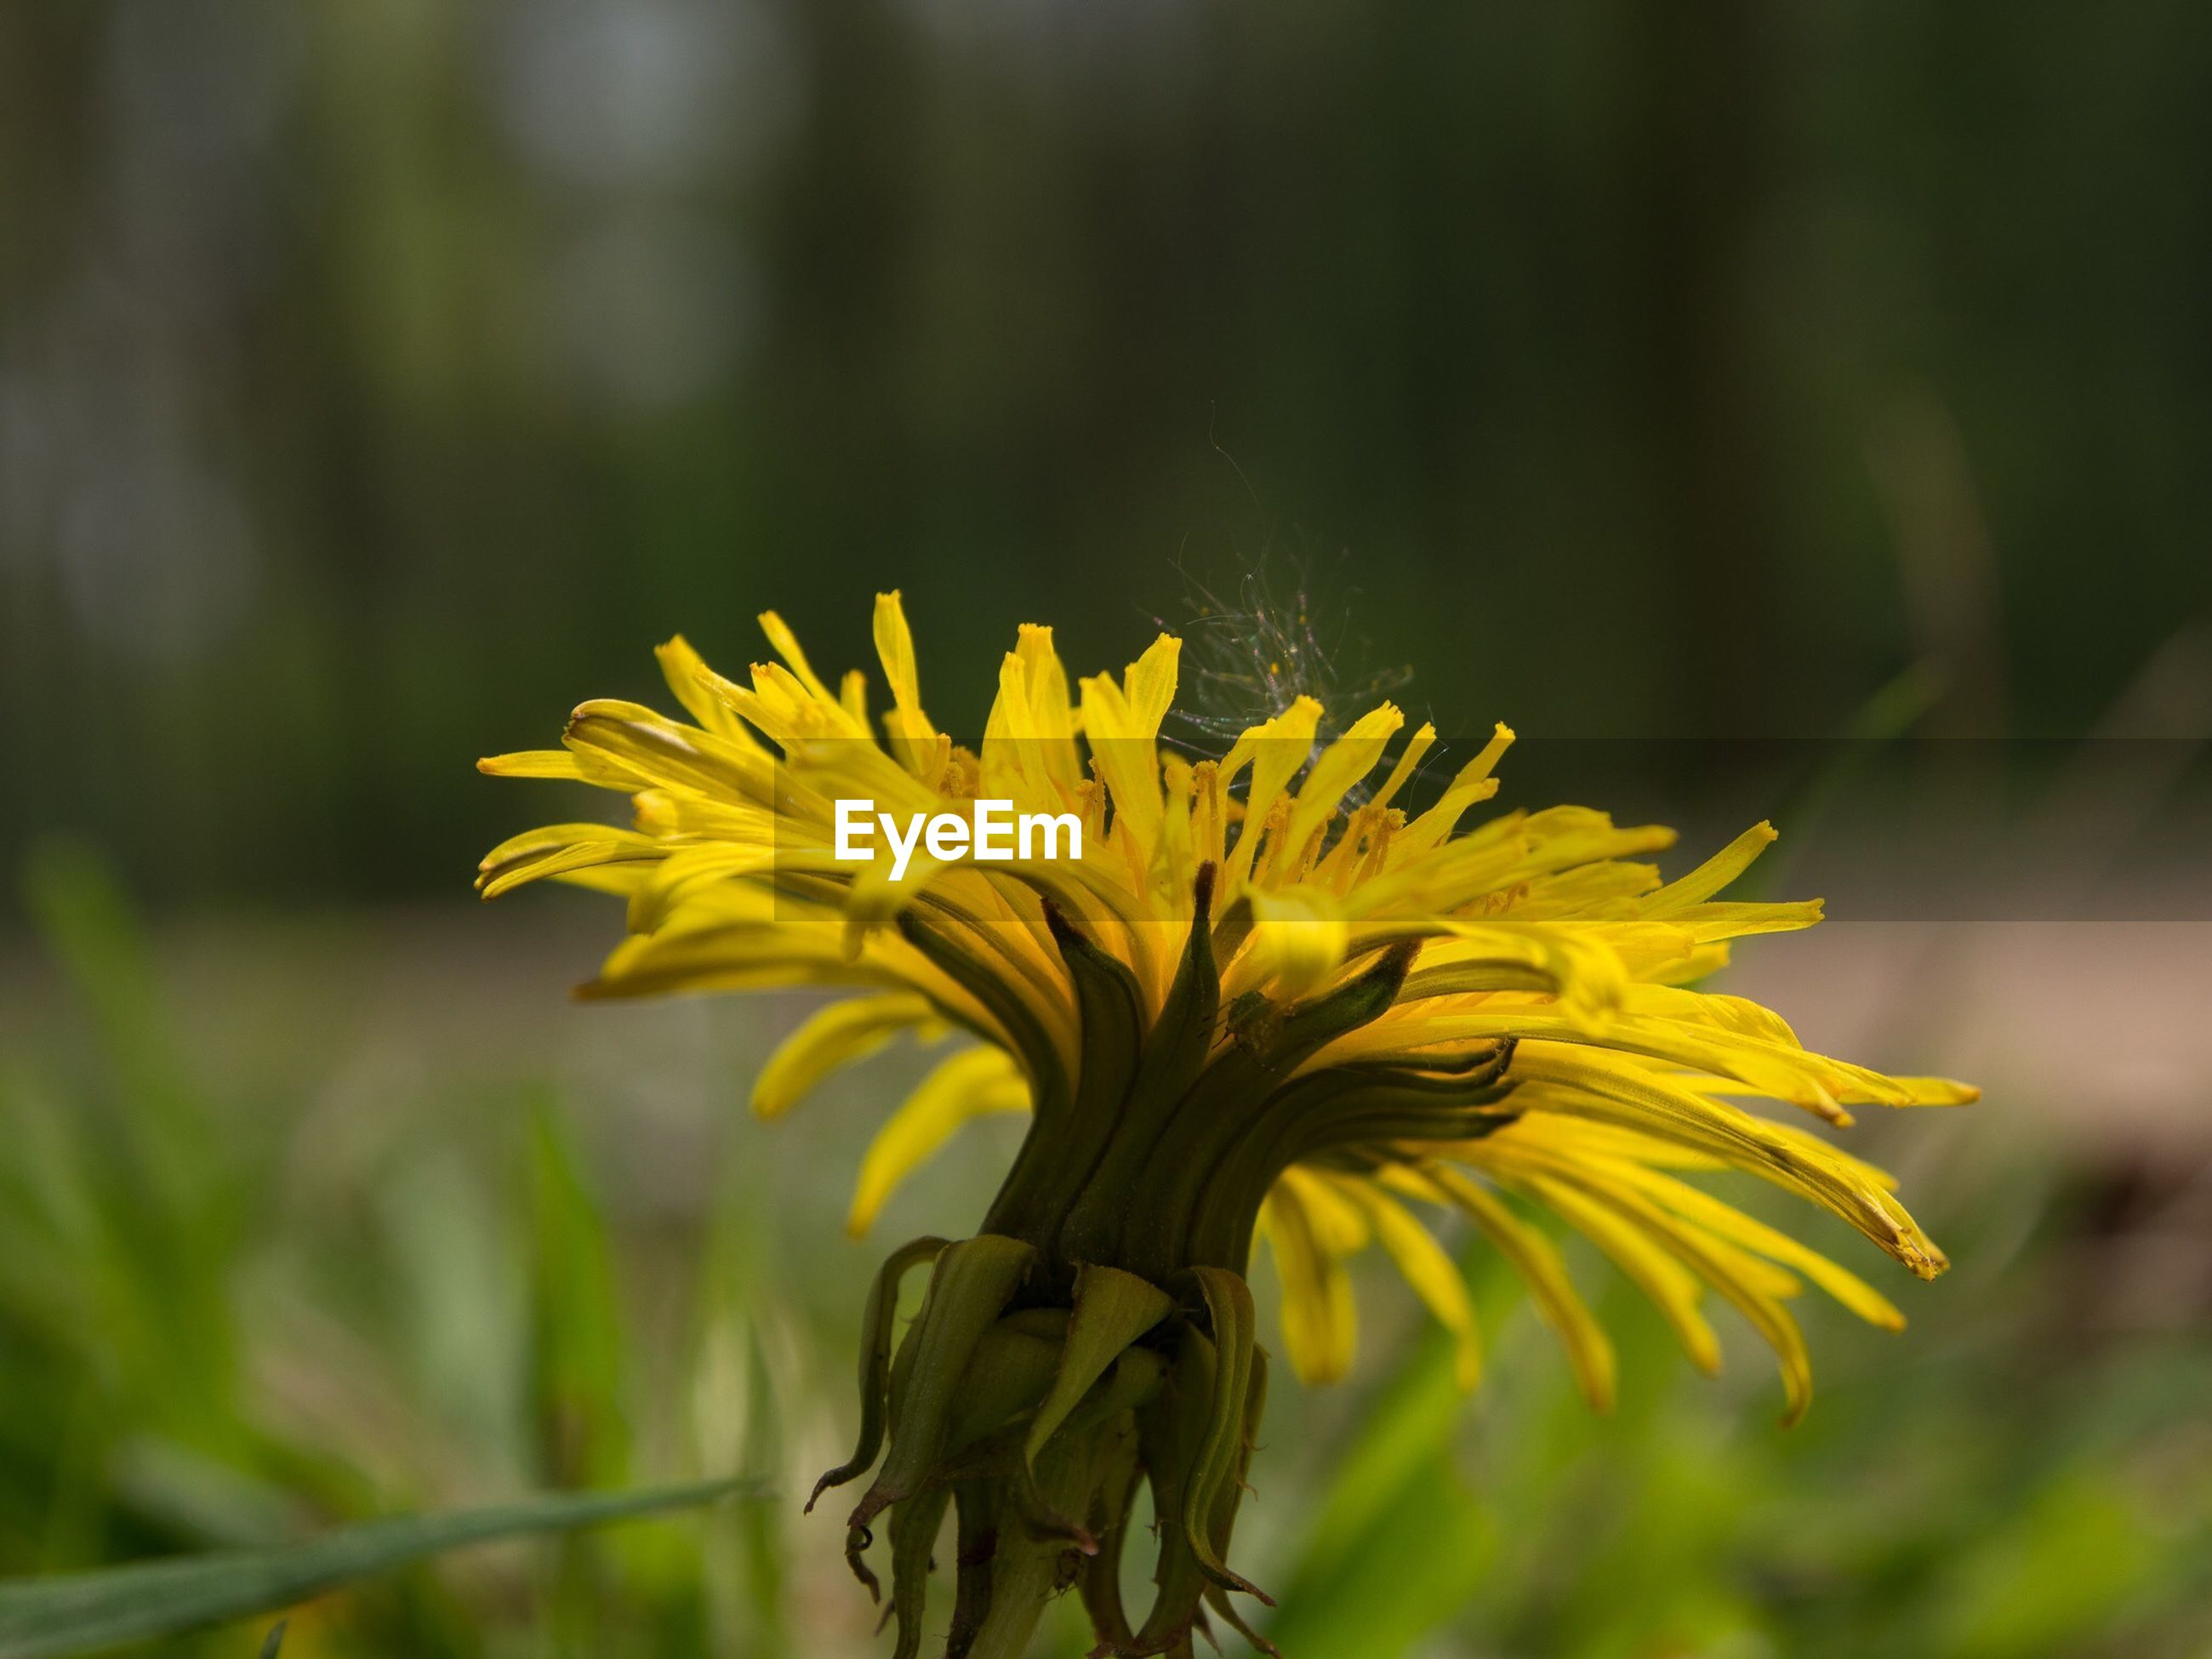 flower, yellow, freshness, fragility, focus on foreground, growth, petal, close-up, flower head, beauty in nature, nature, plant, stem, blooming, single flower, field, in bloom, selective focus, botany, day